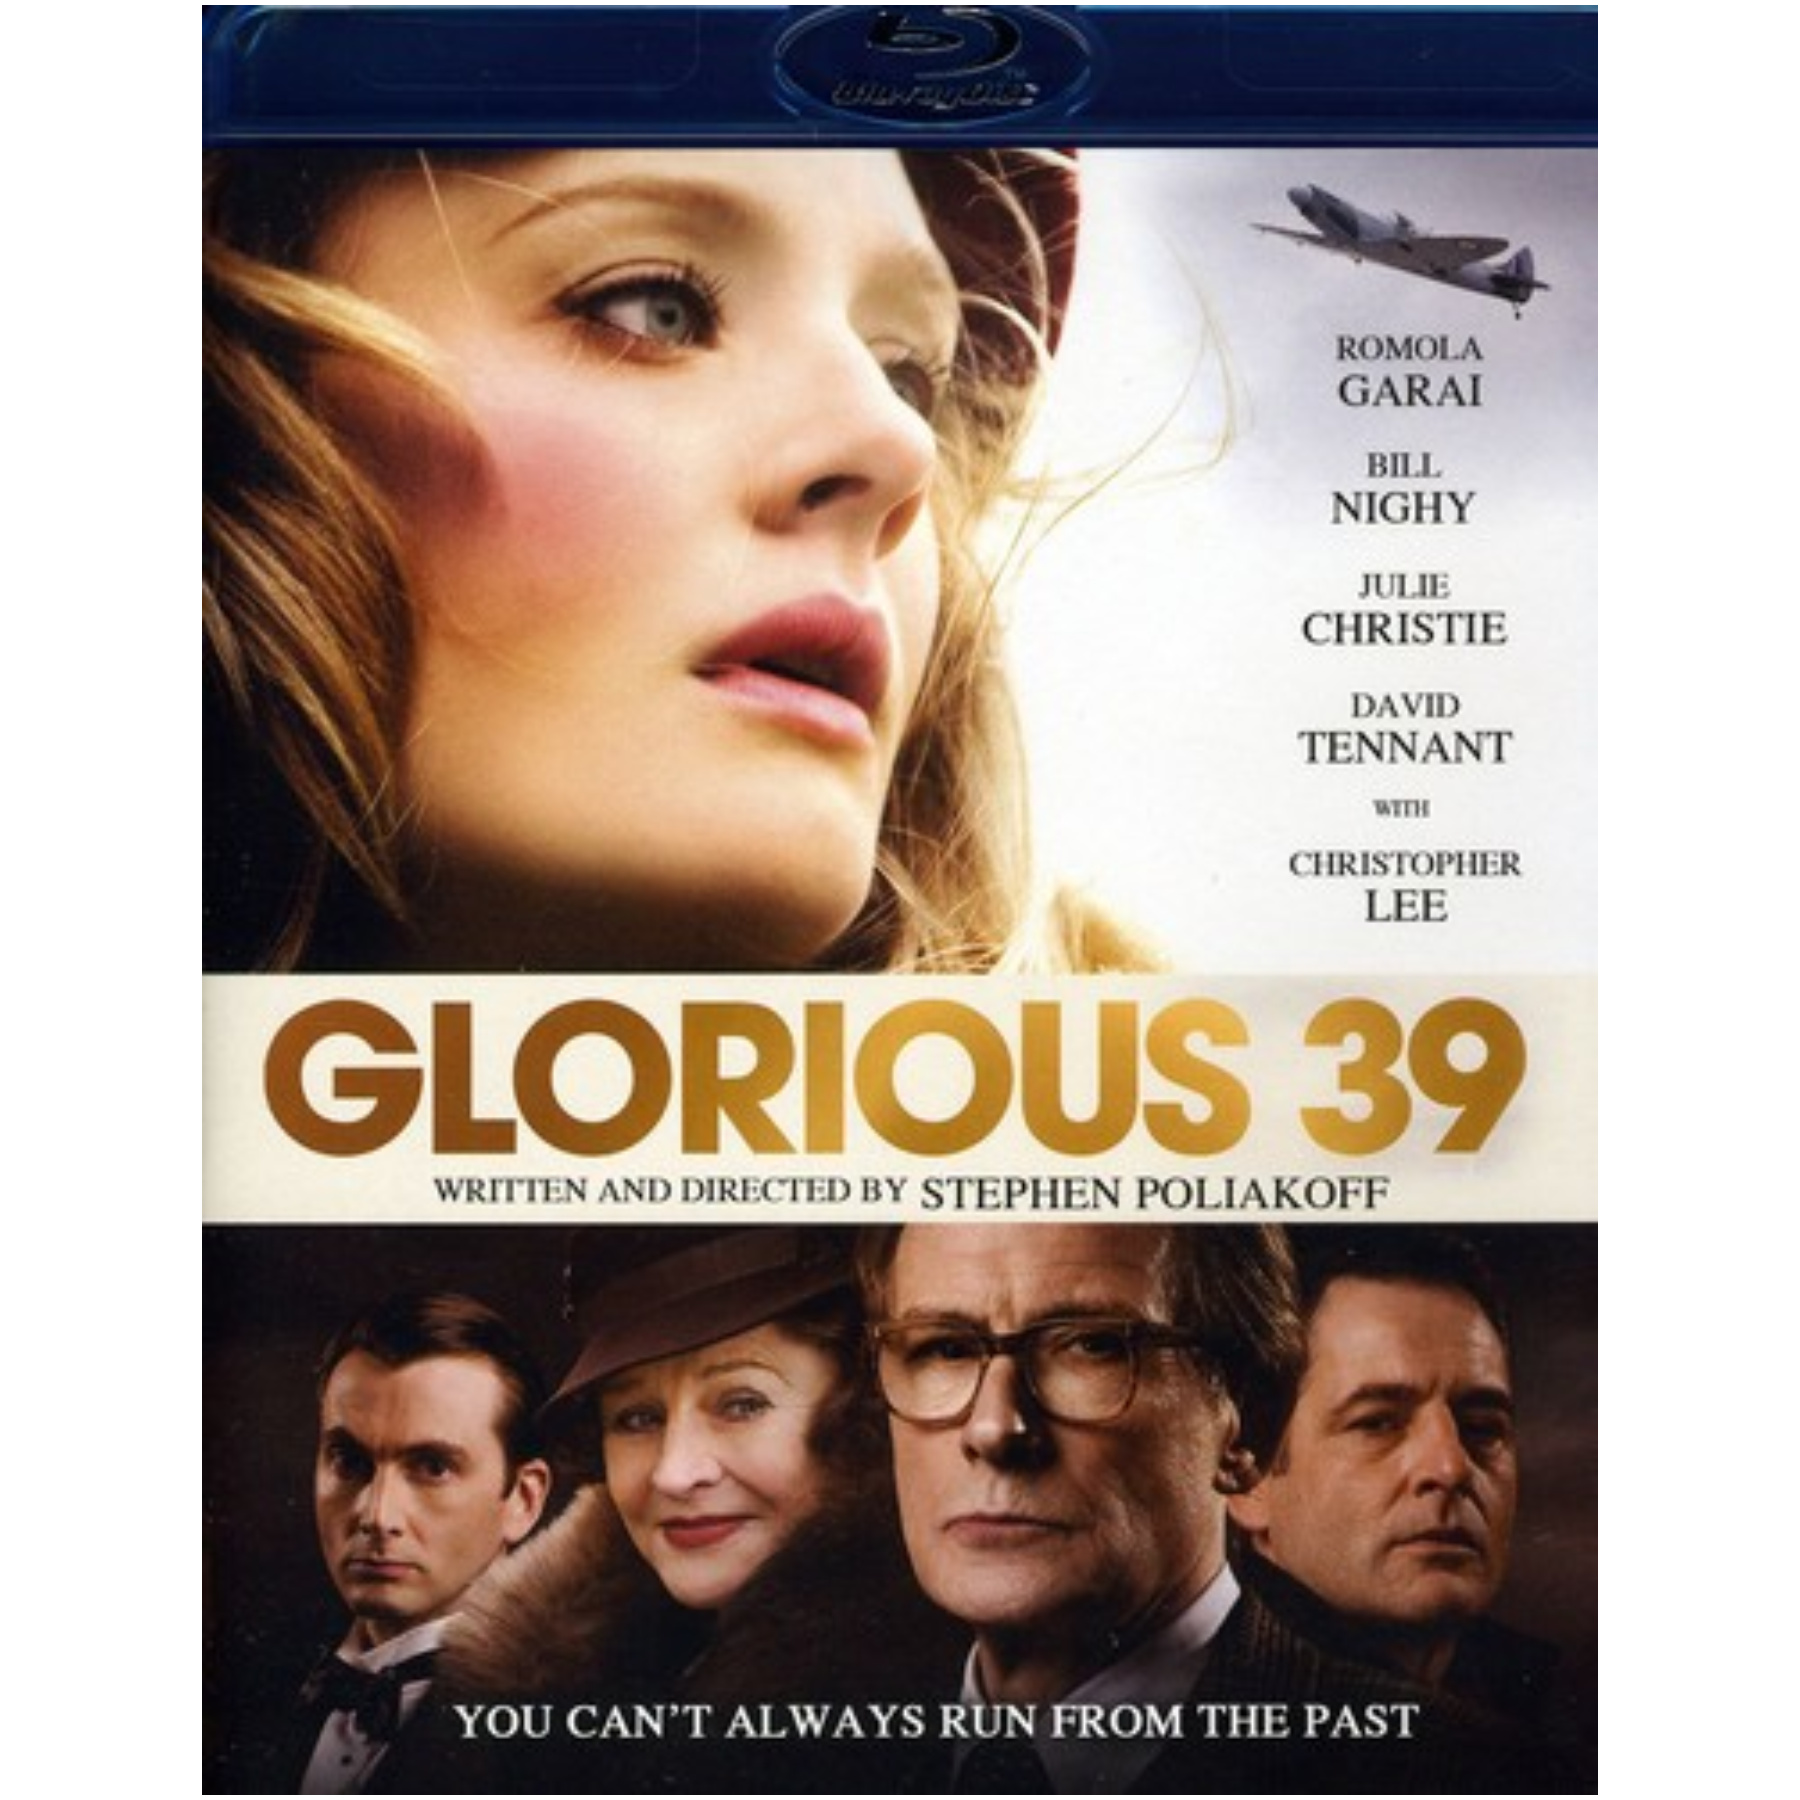 Glorious 39 Blu-Ray 74195268429